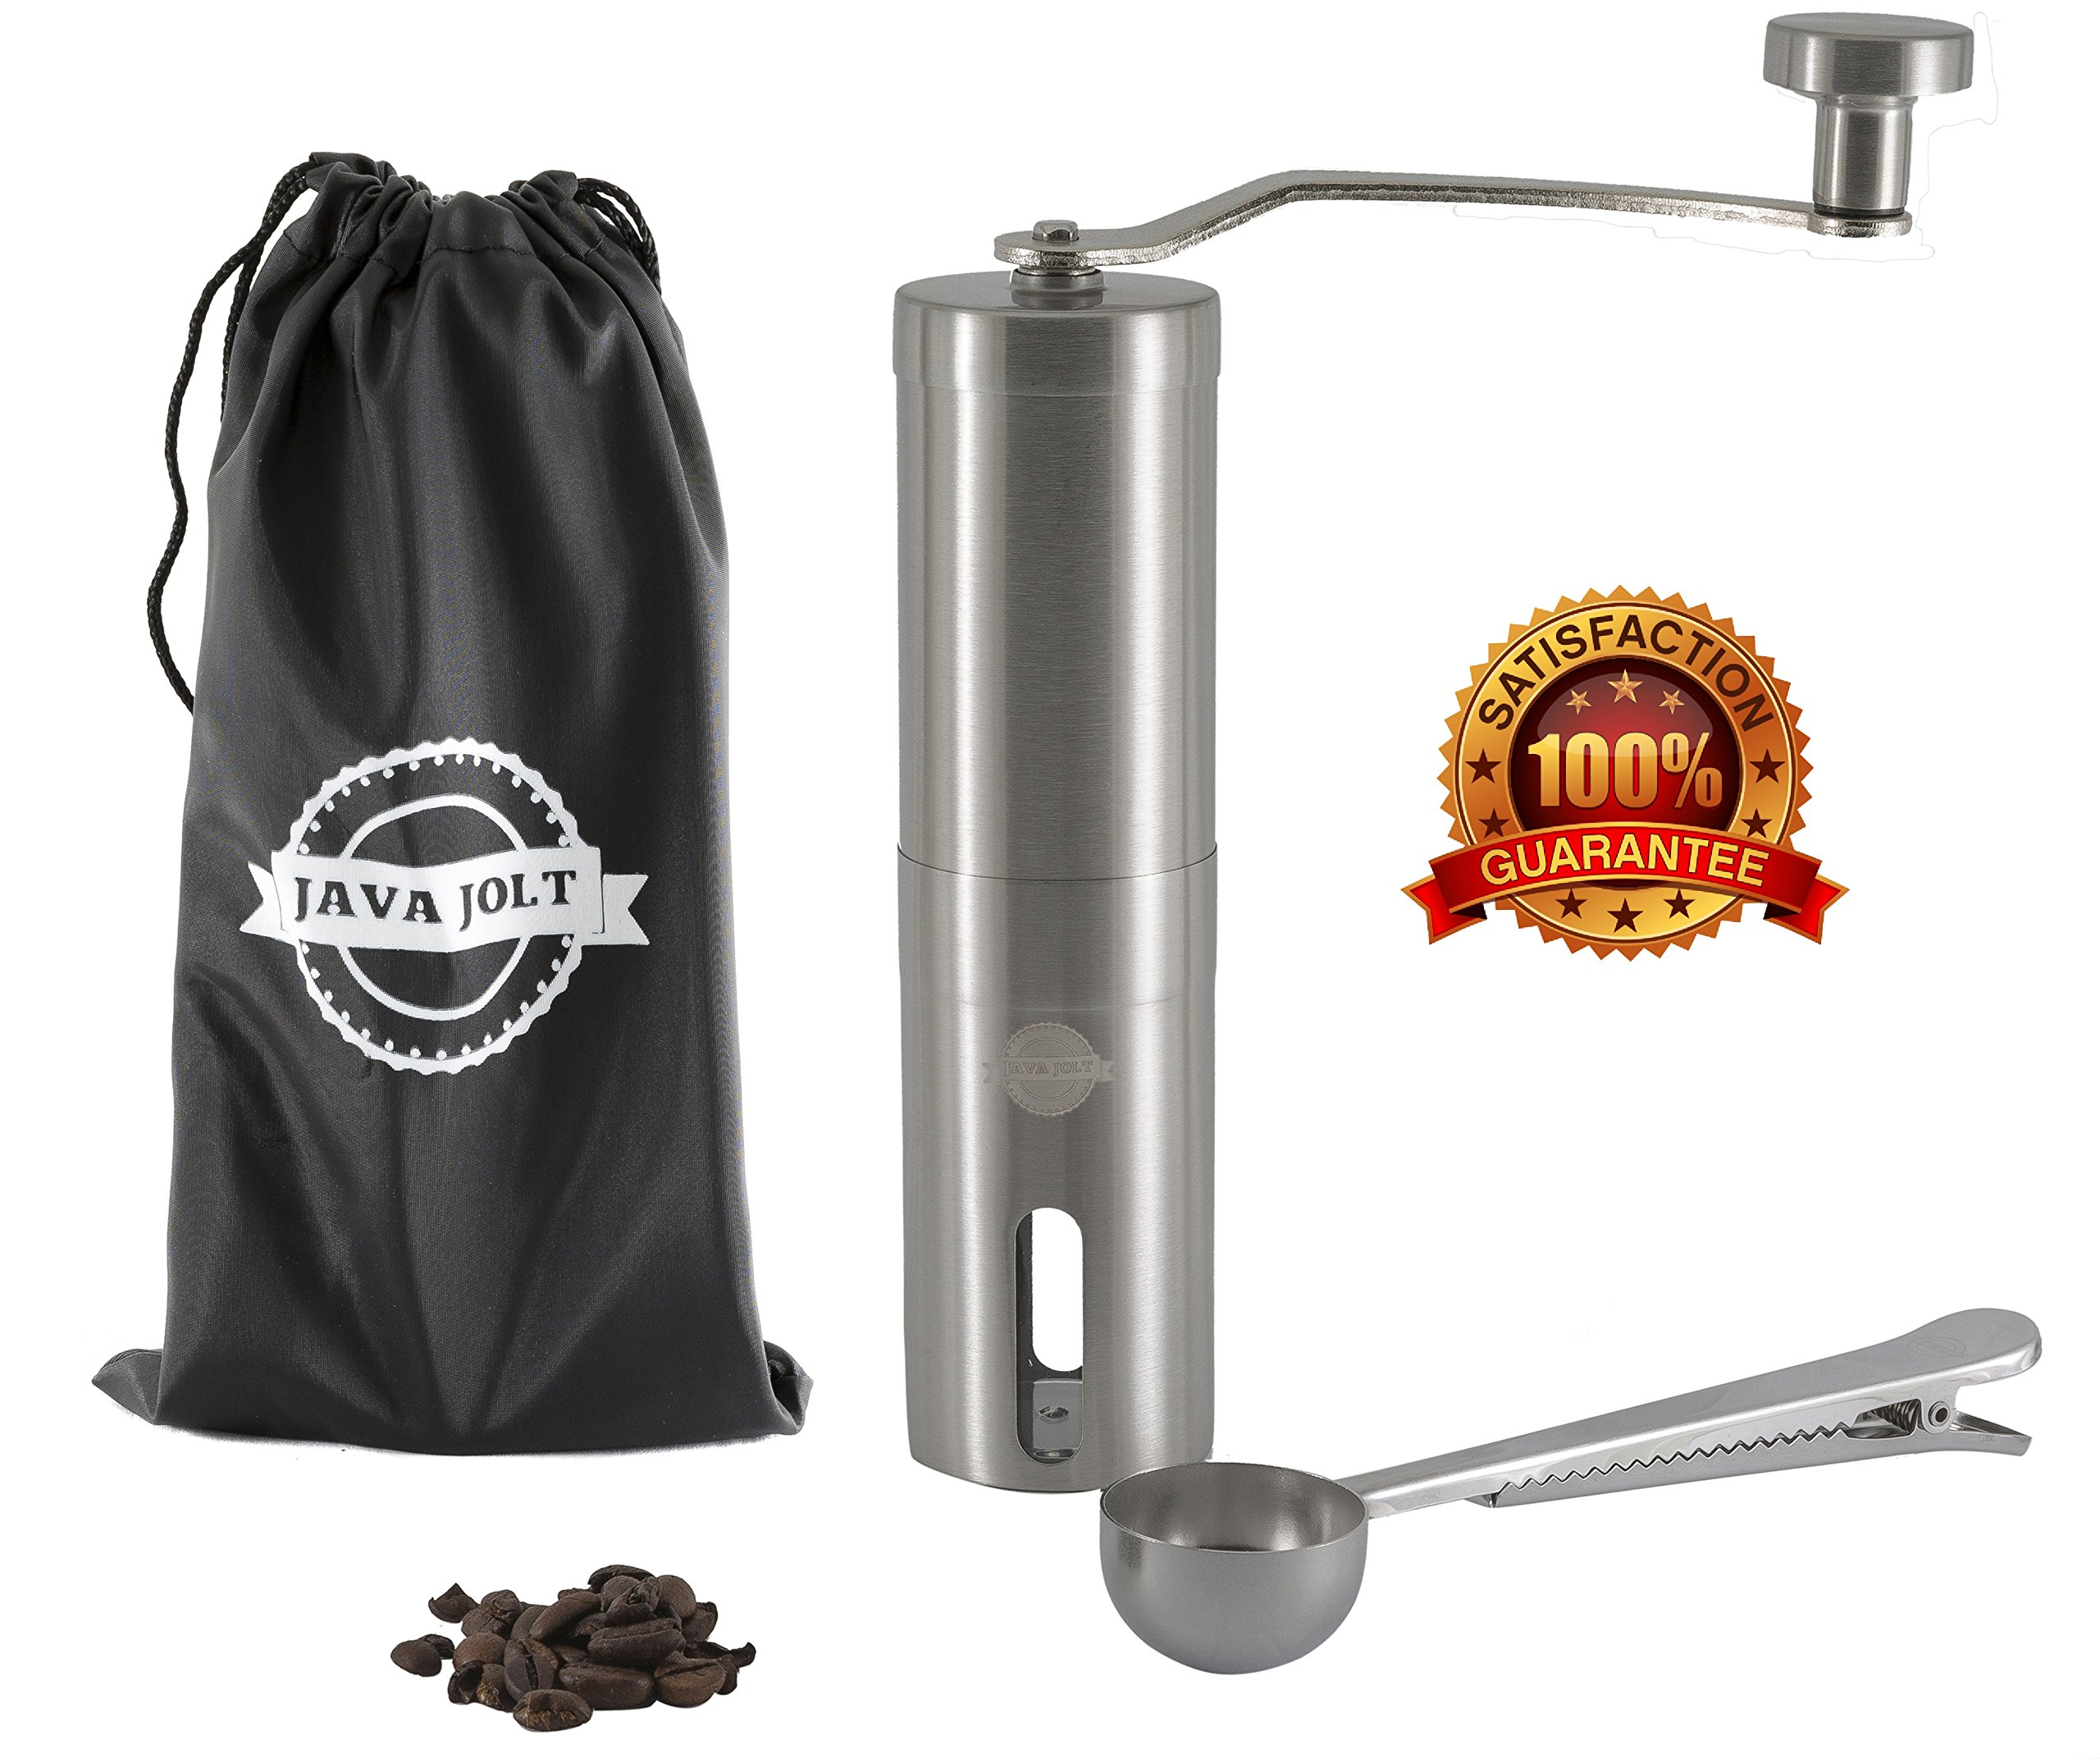 Manual Coffee Grinder By Java Jolt, Stainless Steel Mill: Adjustable Ceramic Conical Burr Premium Grinding Mill Includes Bonus Travel Pouch and Spoon Clip